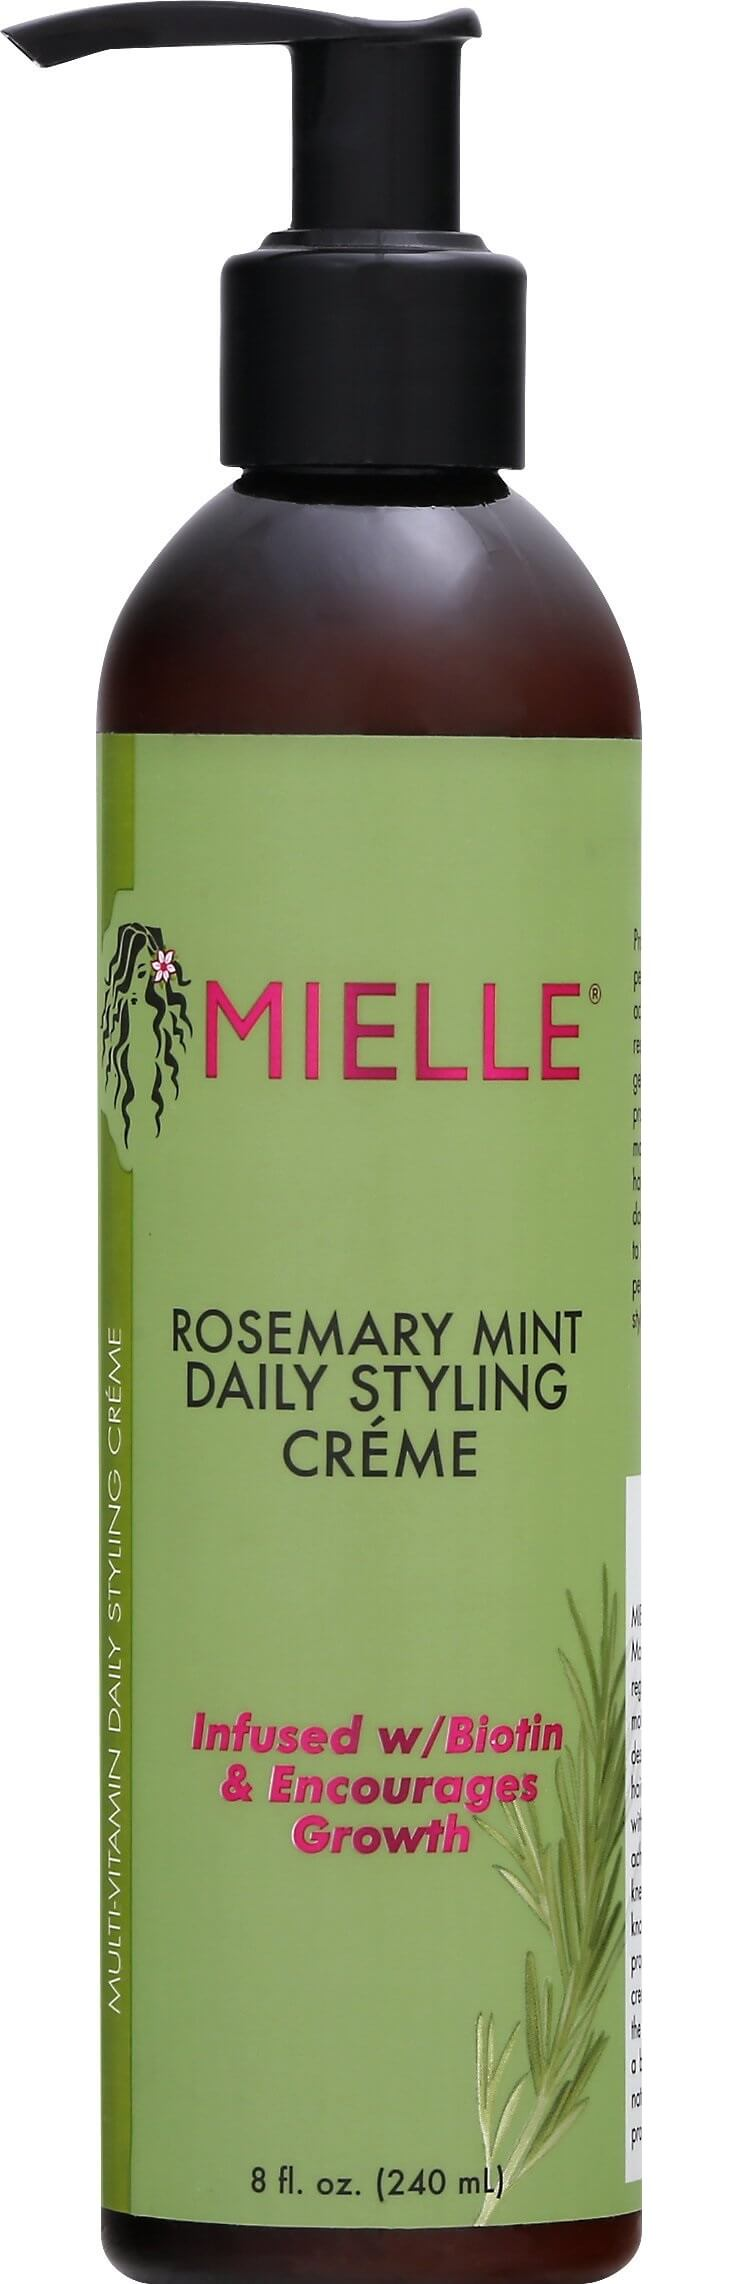 ROSEMARY MINT DAILY STYLING CREME